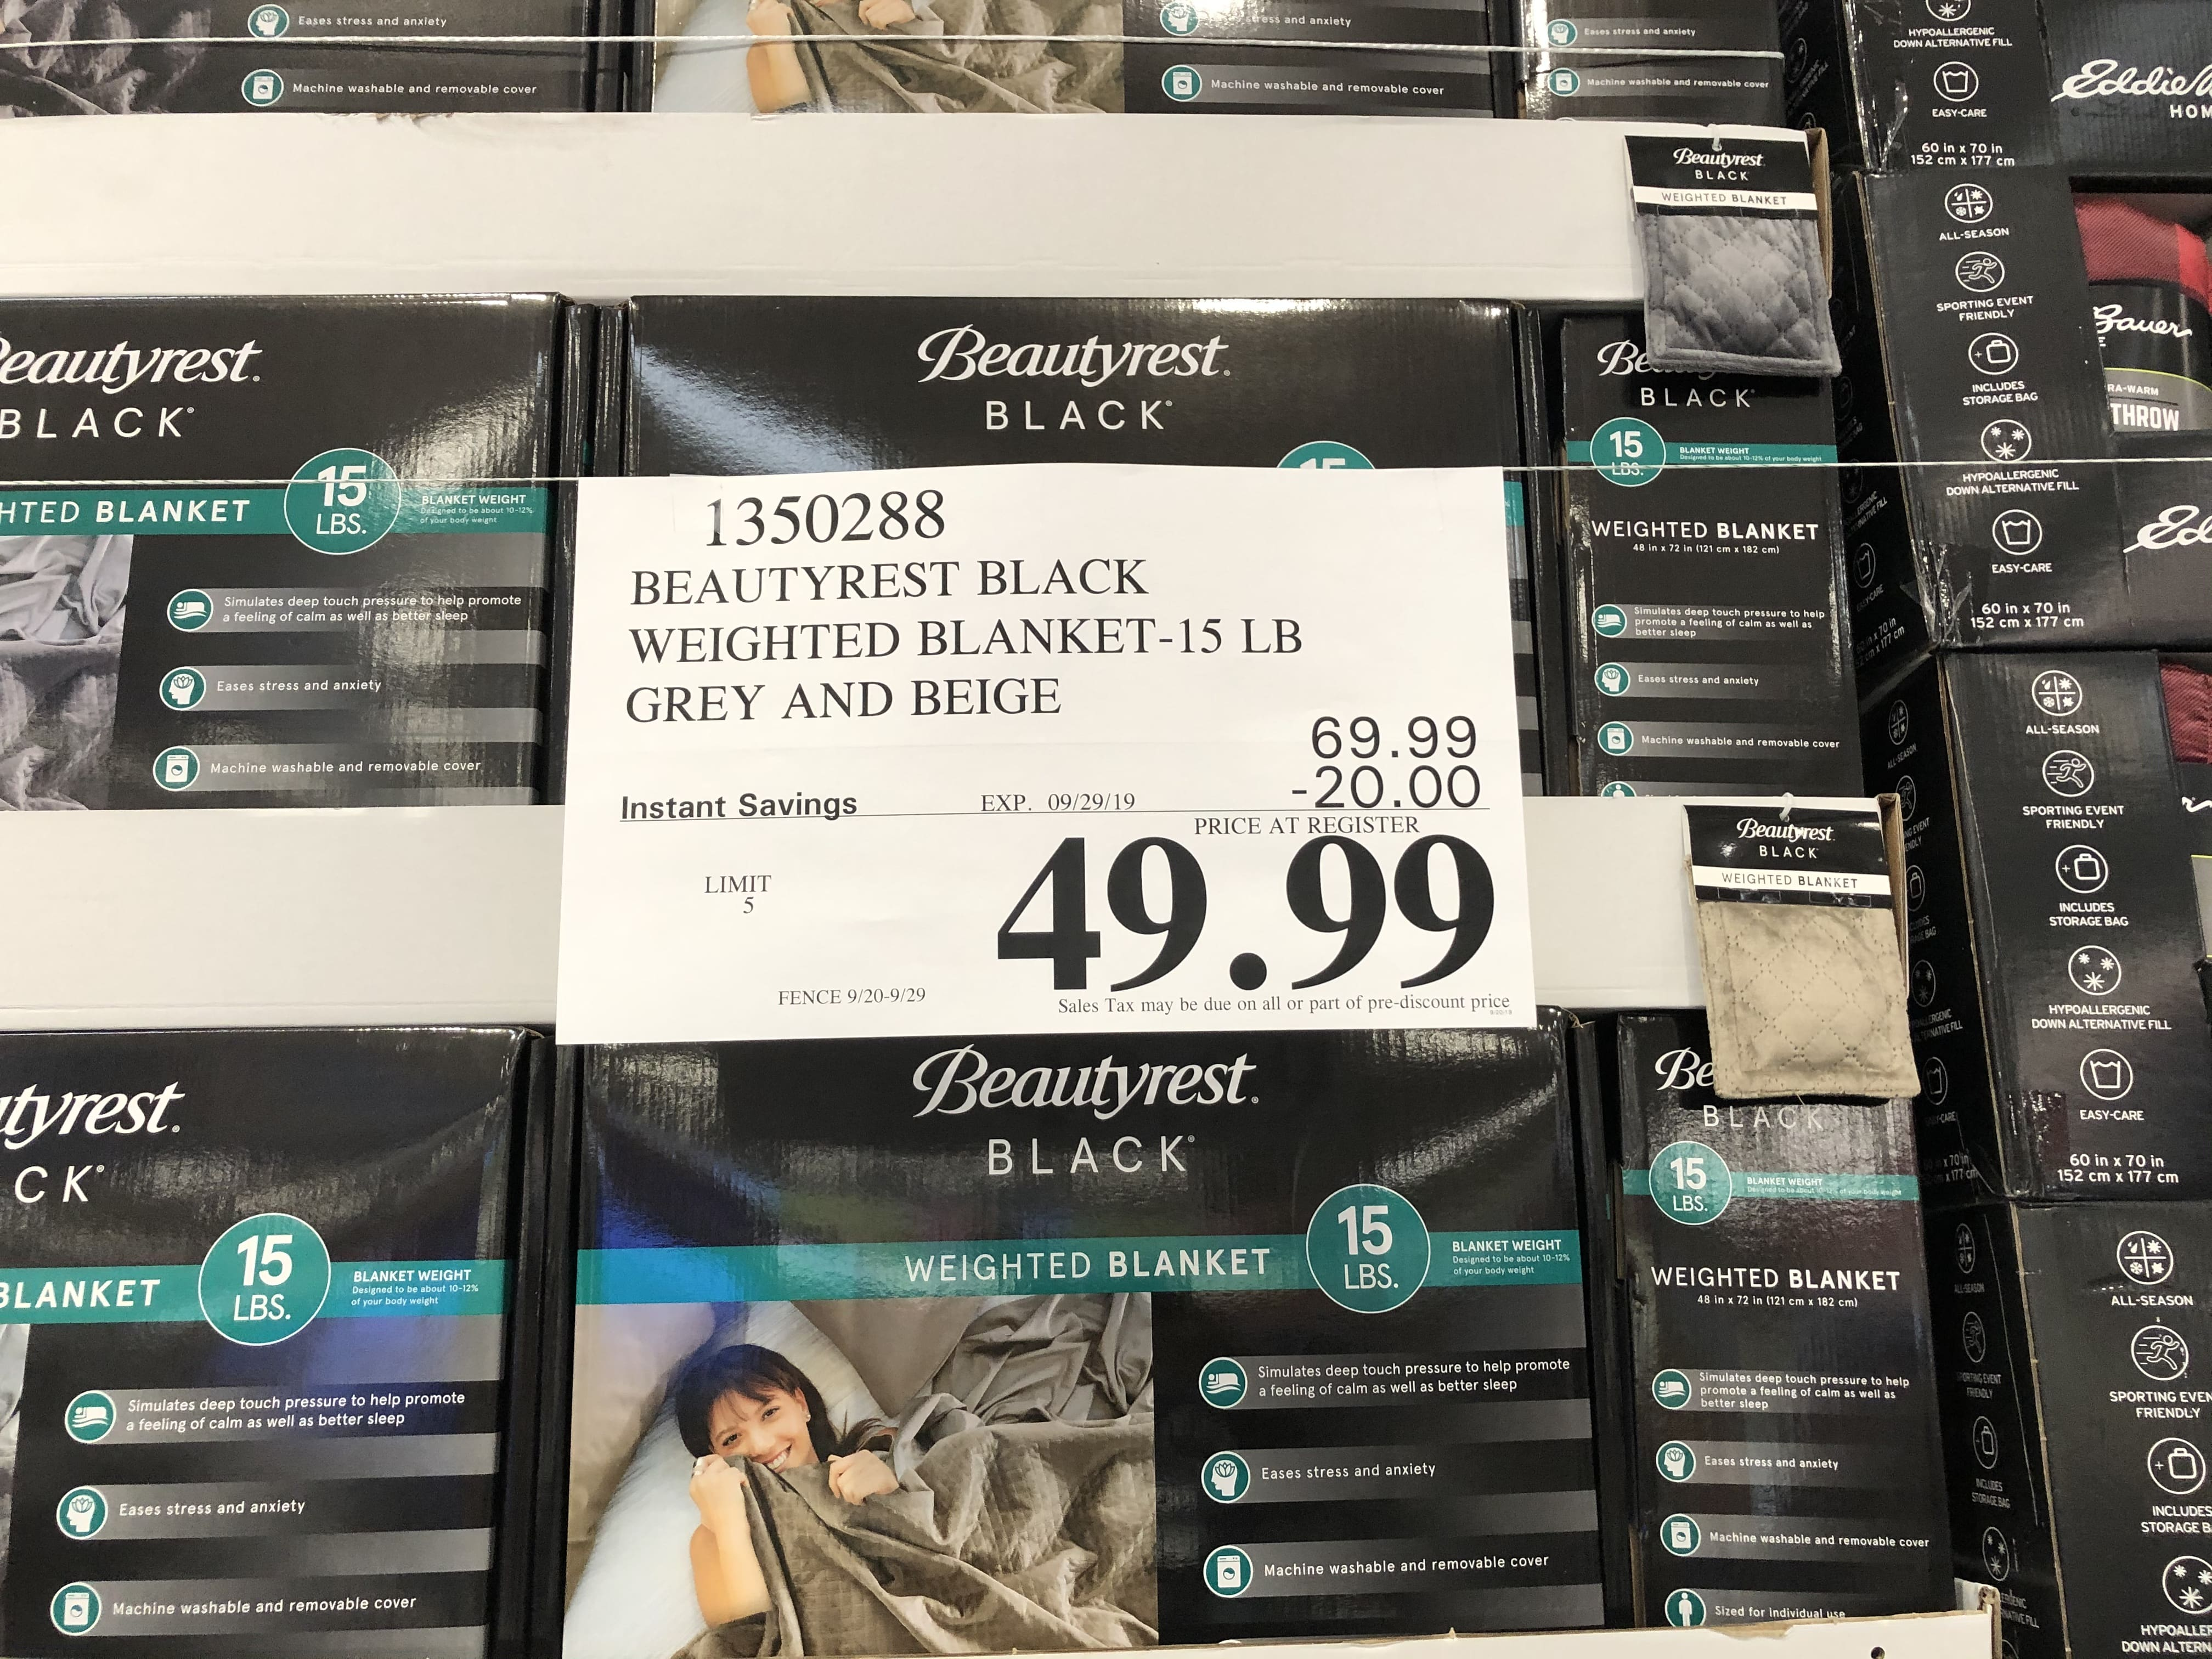 Beautyrest Black Weighted Blanket 15 lbs, Costco B&M $49.99